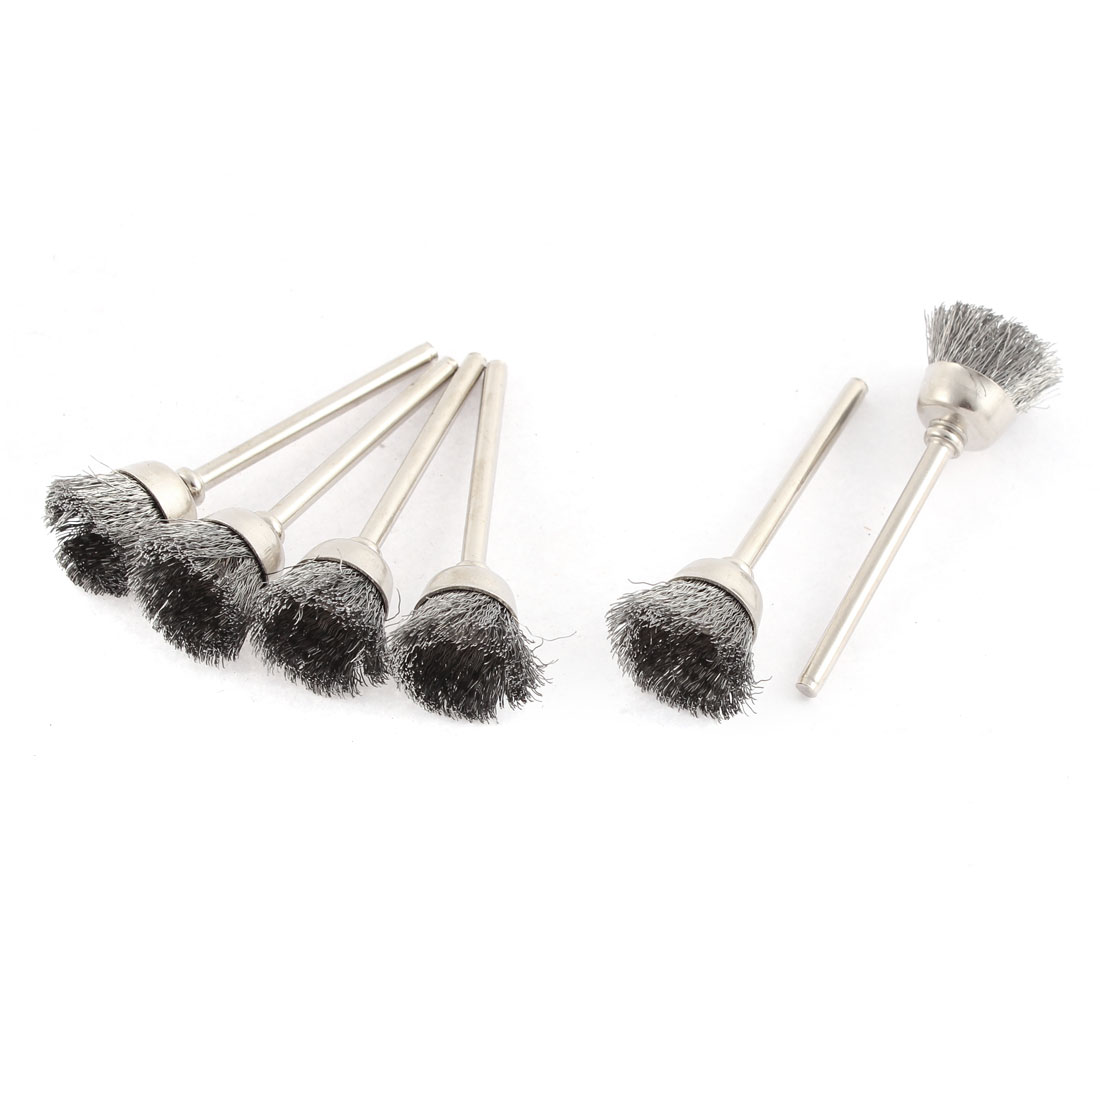 Silver Tone Steel Wire Polishing Brushes Jewelry Cleaning Buffing Tools 6pcs